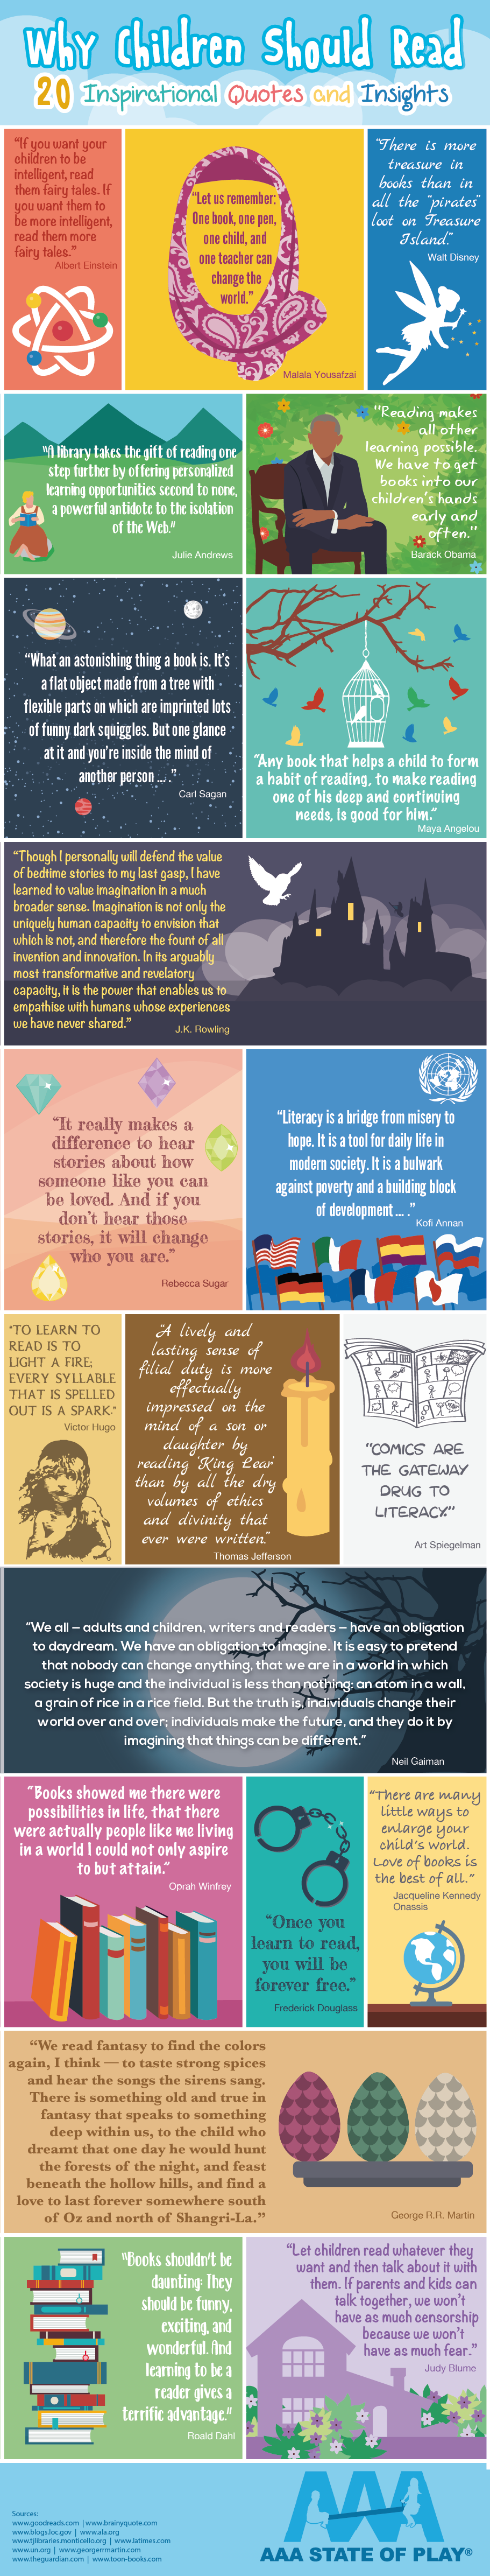 Why Children Should Read: 20 Inspirational Quotes and Insights